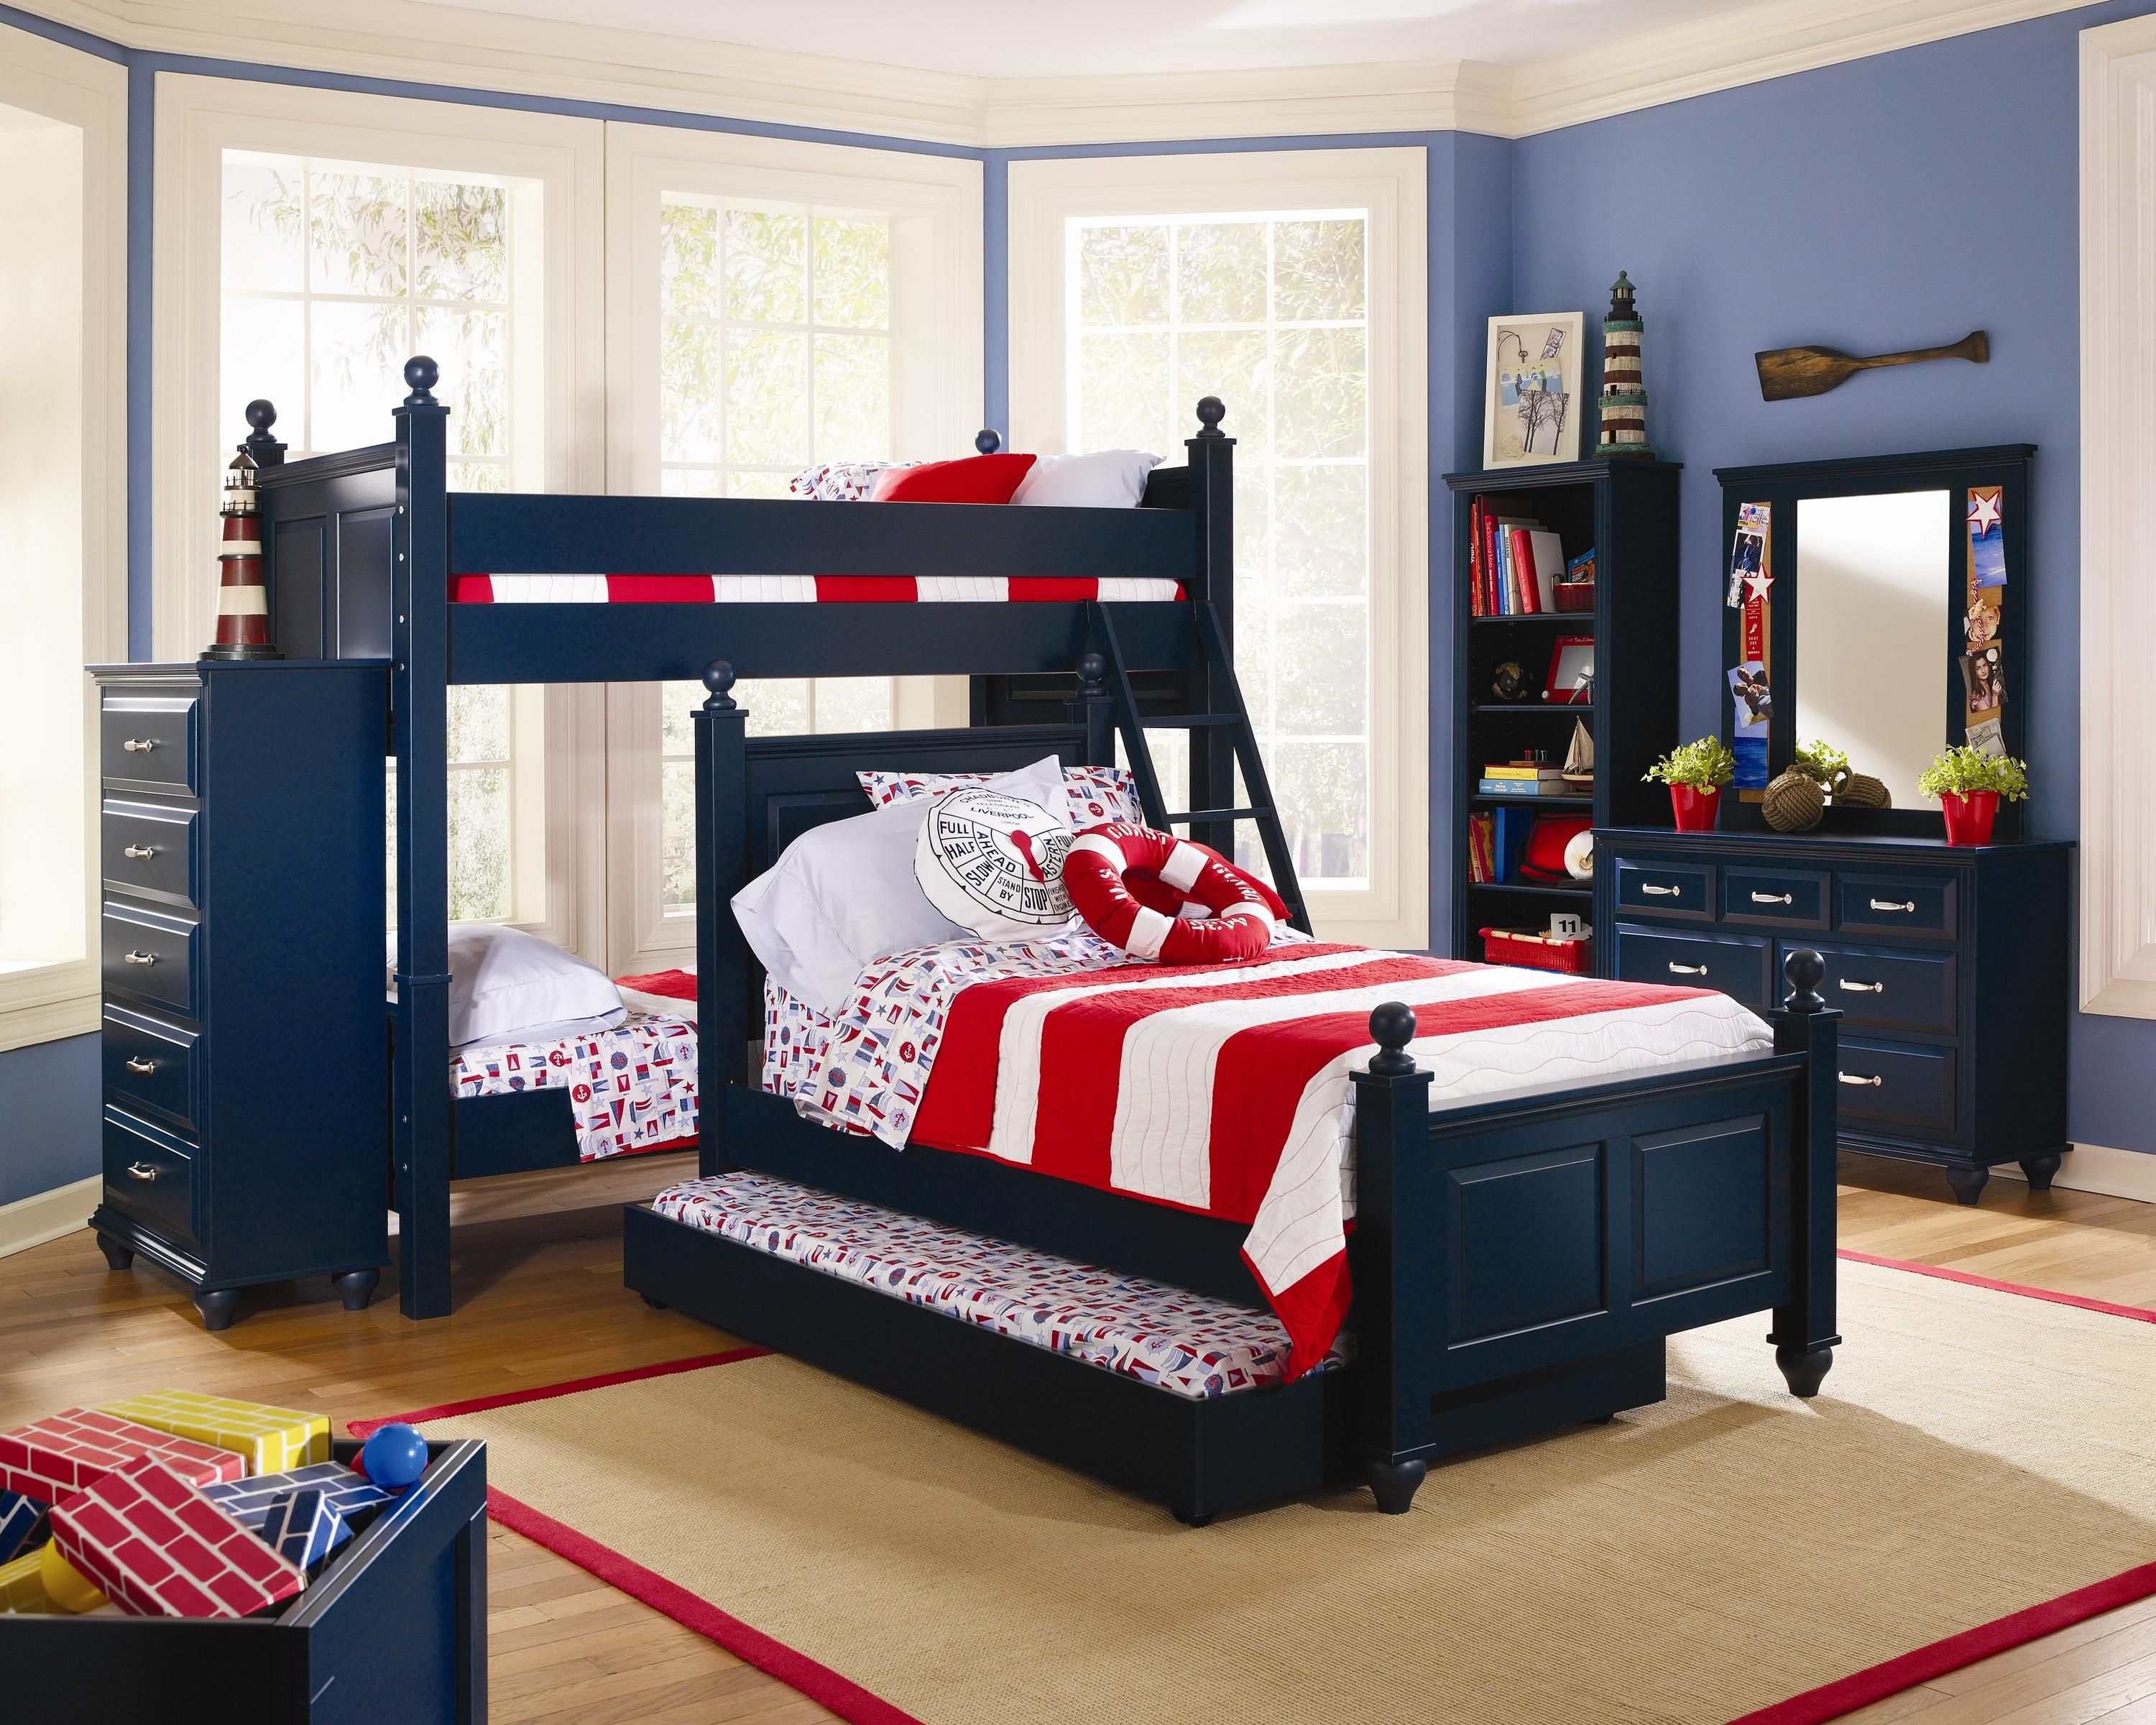 Madison Bunk Bed in Indigo Blue Bedroom Set by Lang